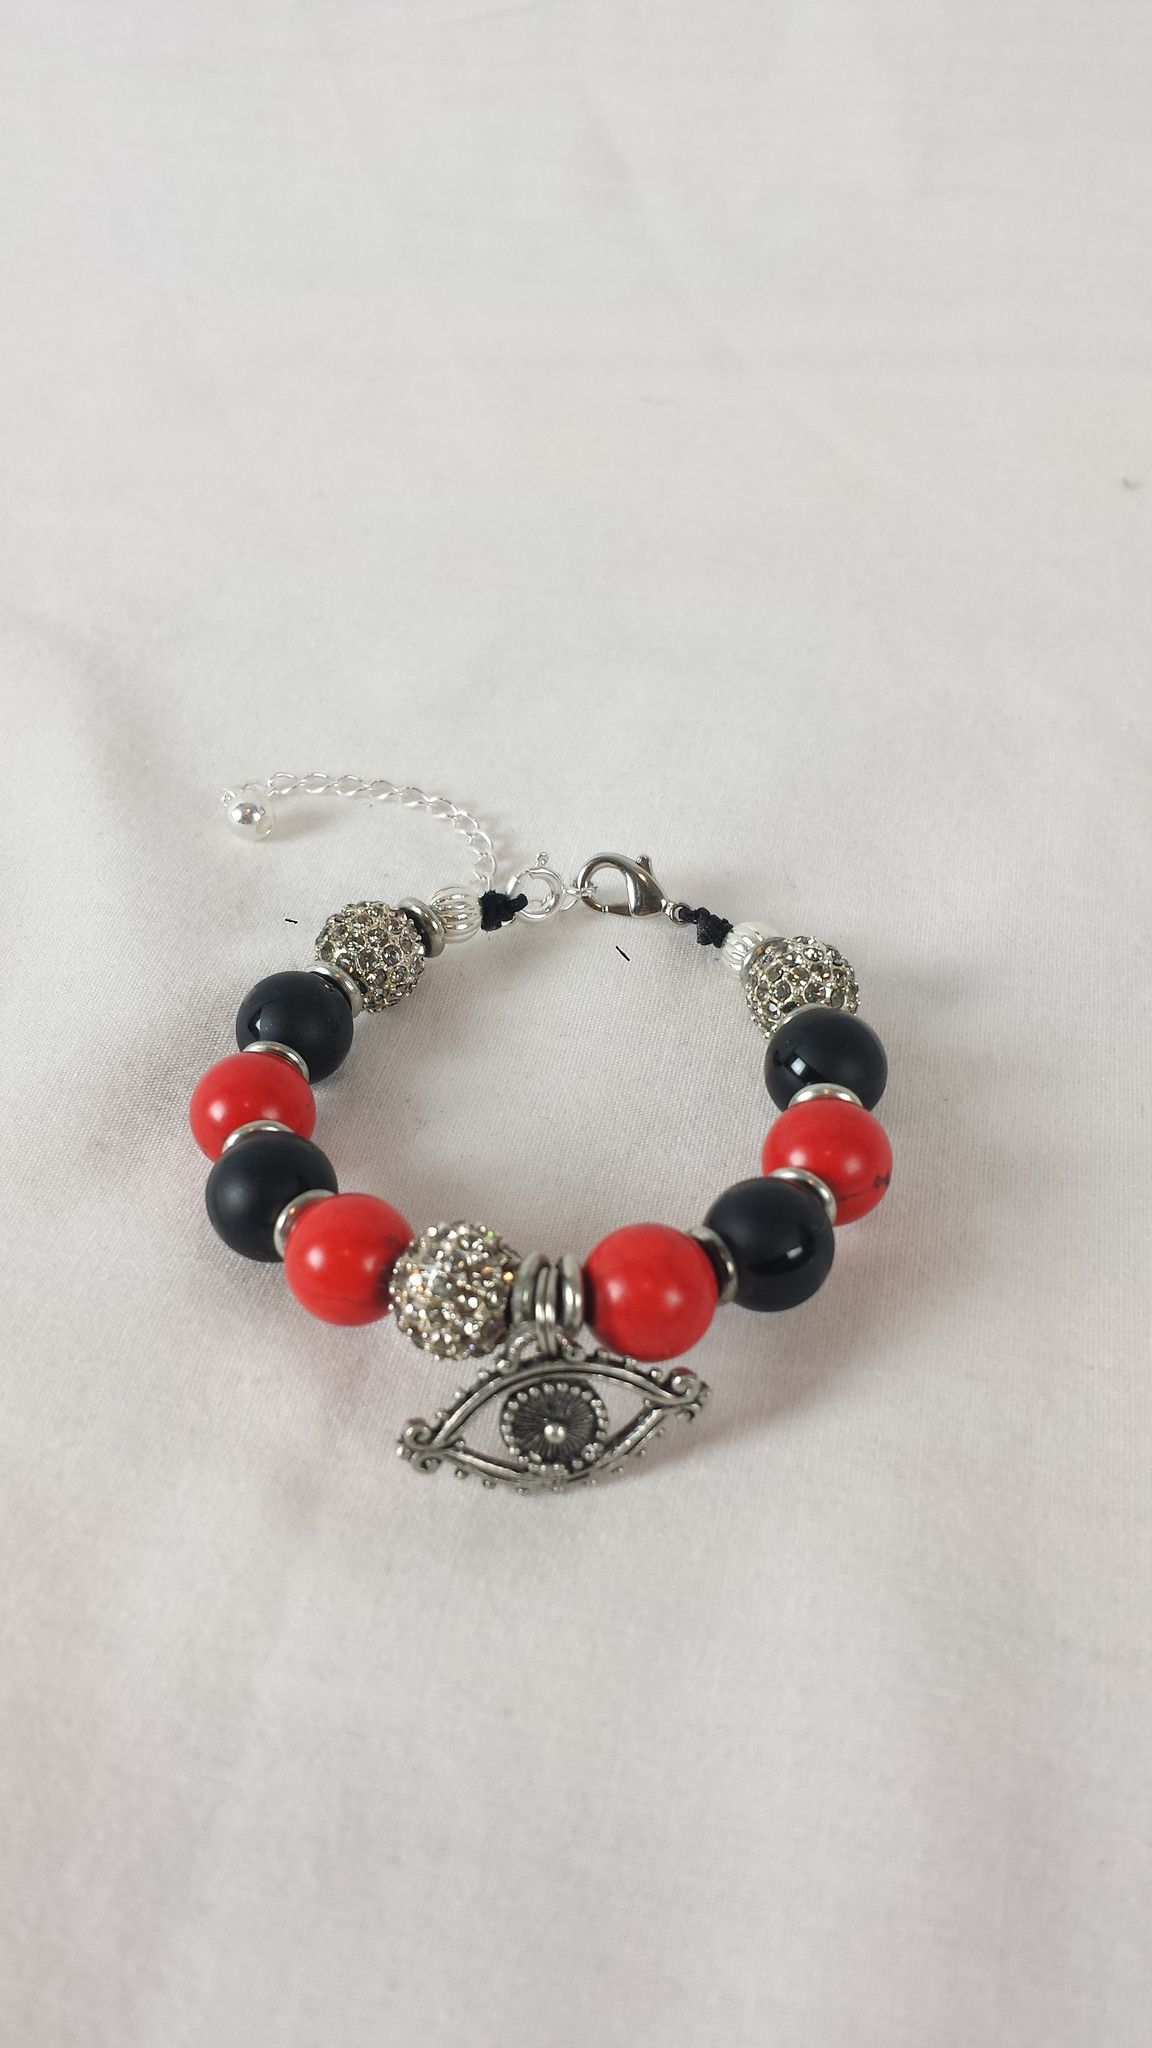 Coral and onyx eye bracelet made with coral red matte black onyx